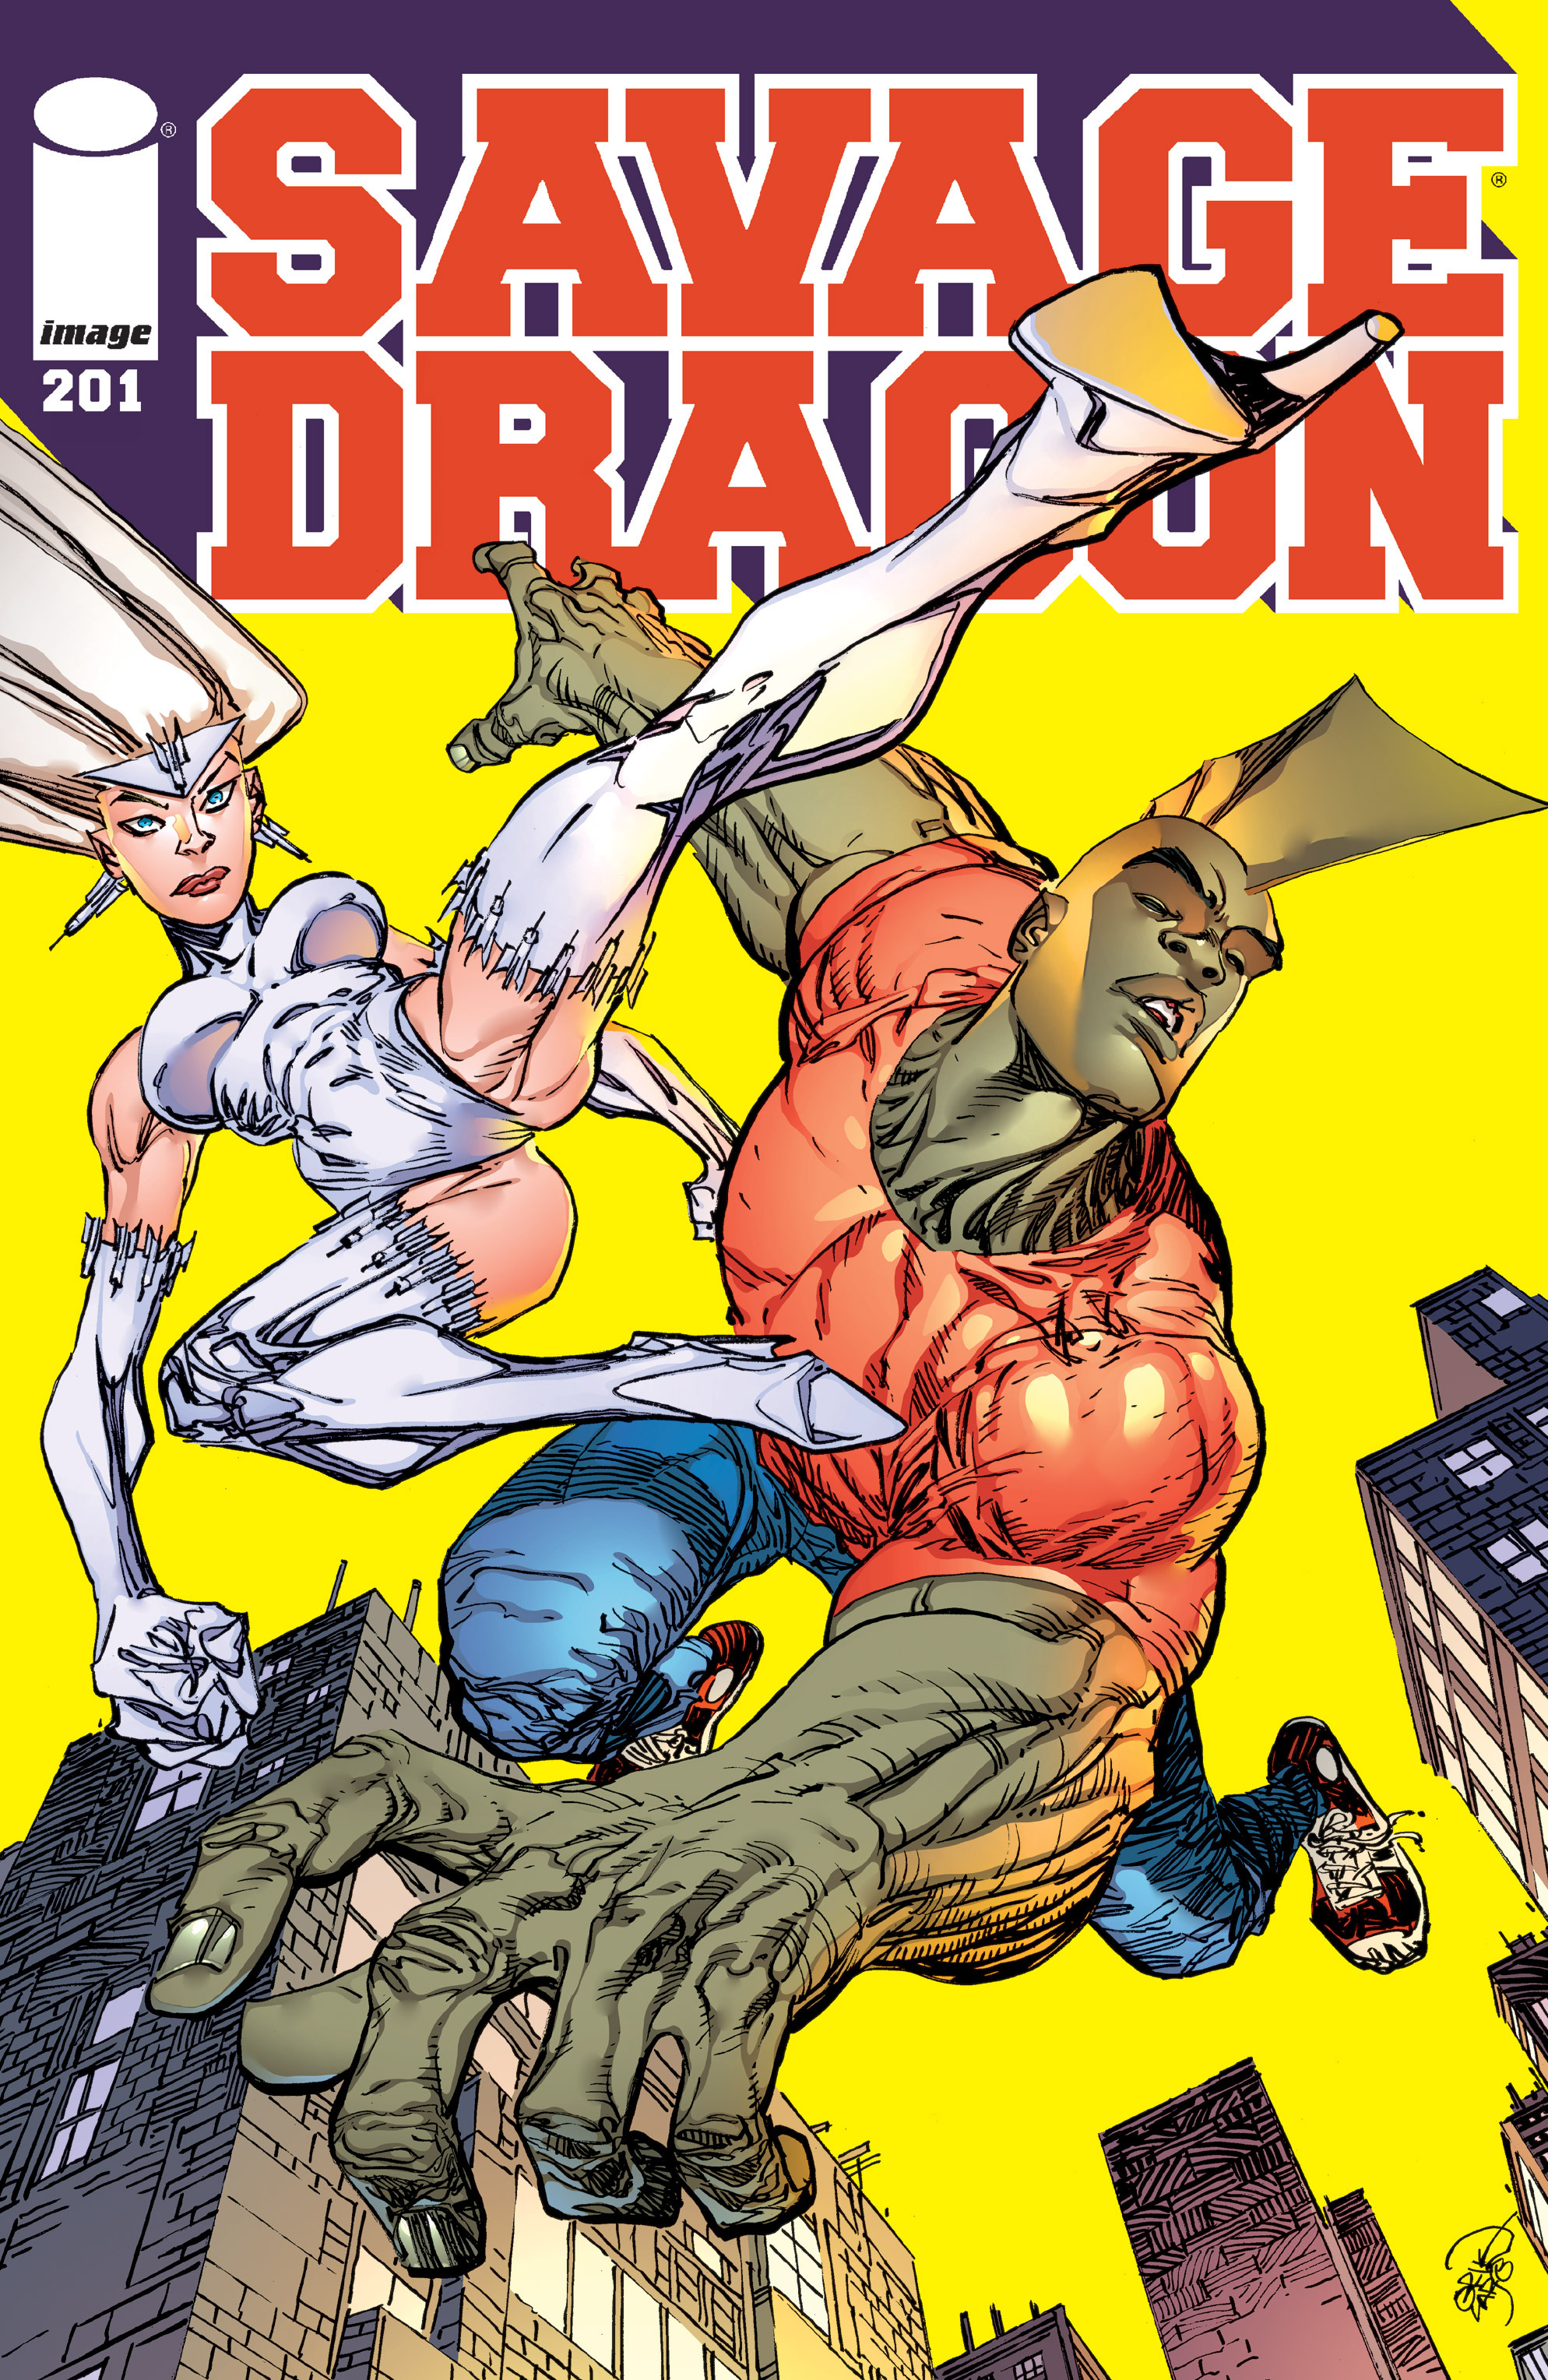 Cover Savage Dragon Vol.2 #201